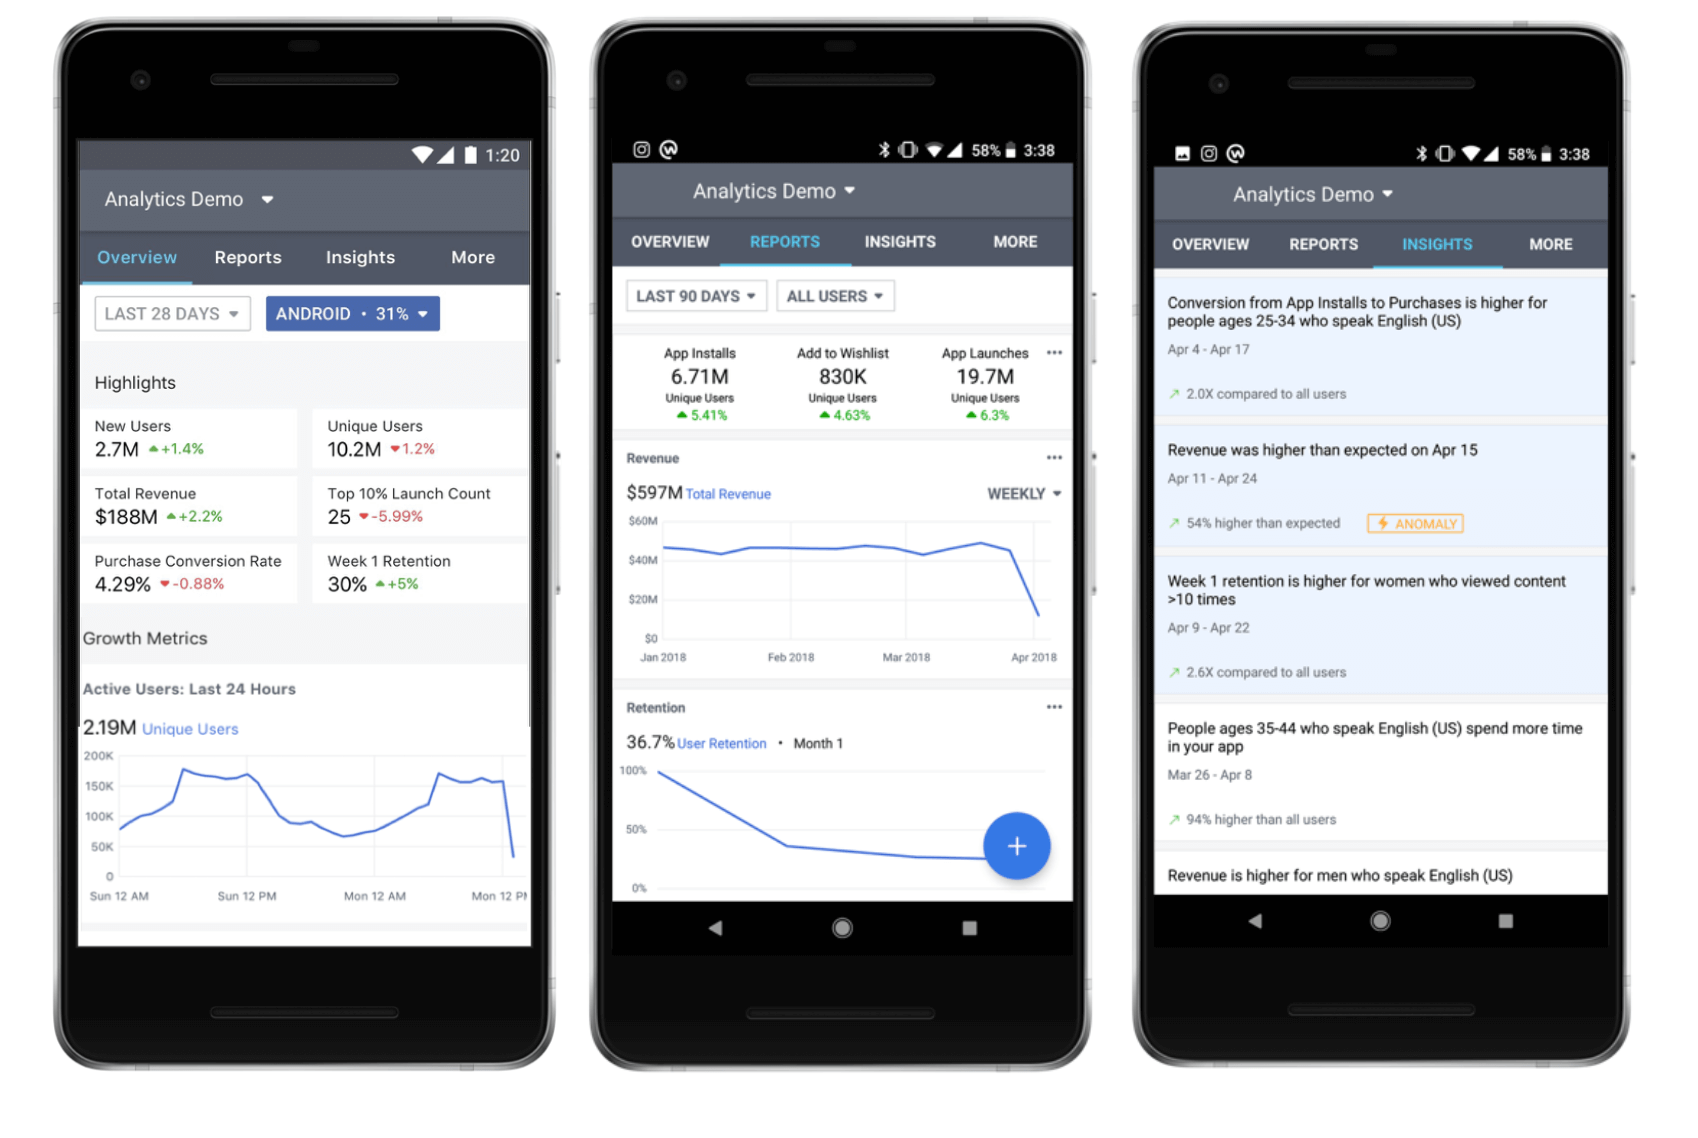 facebook mobile analytics f8 conference 2018 recap cpc strategy blog